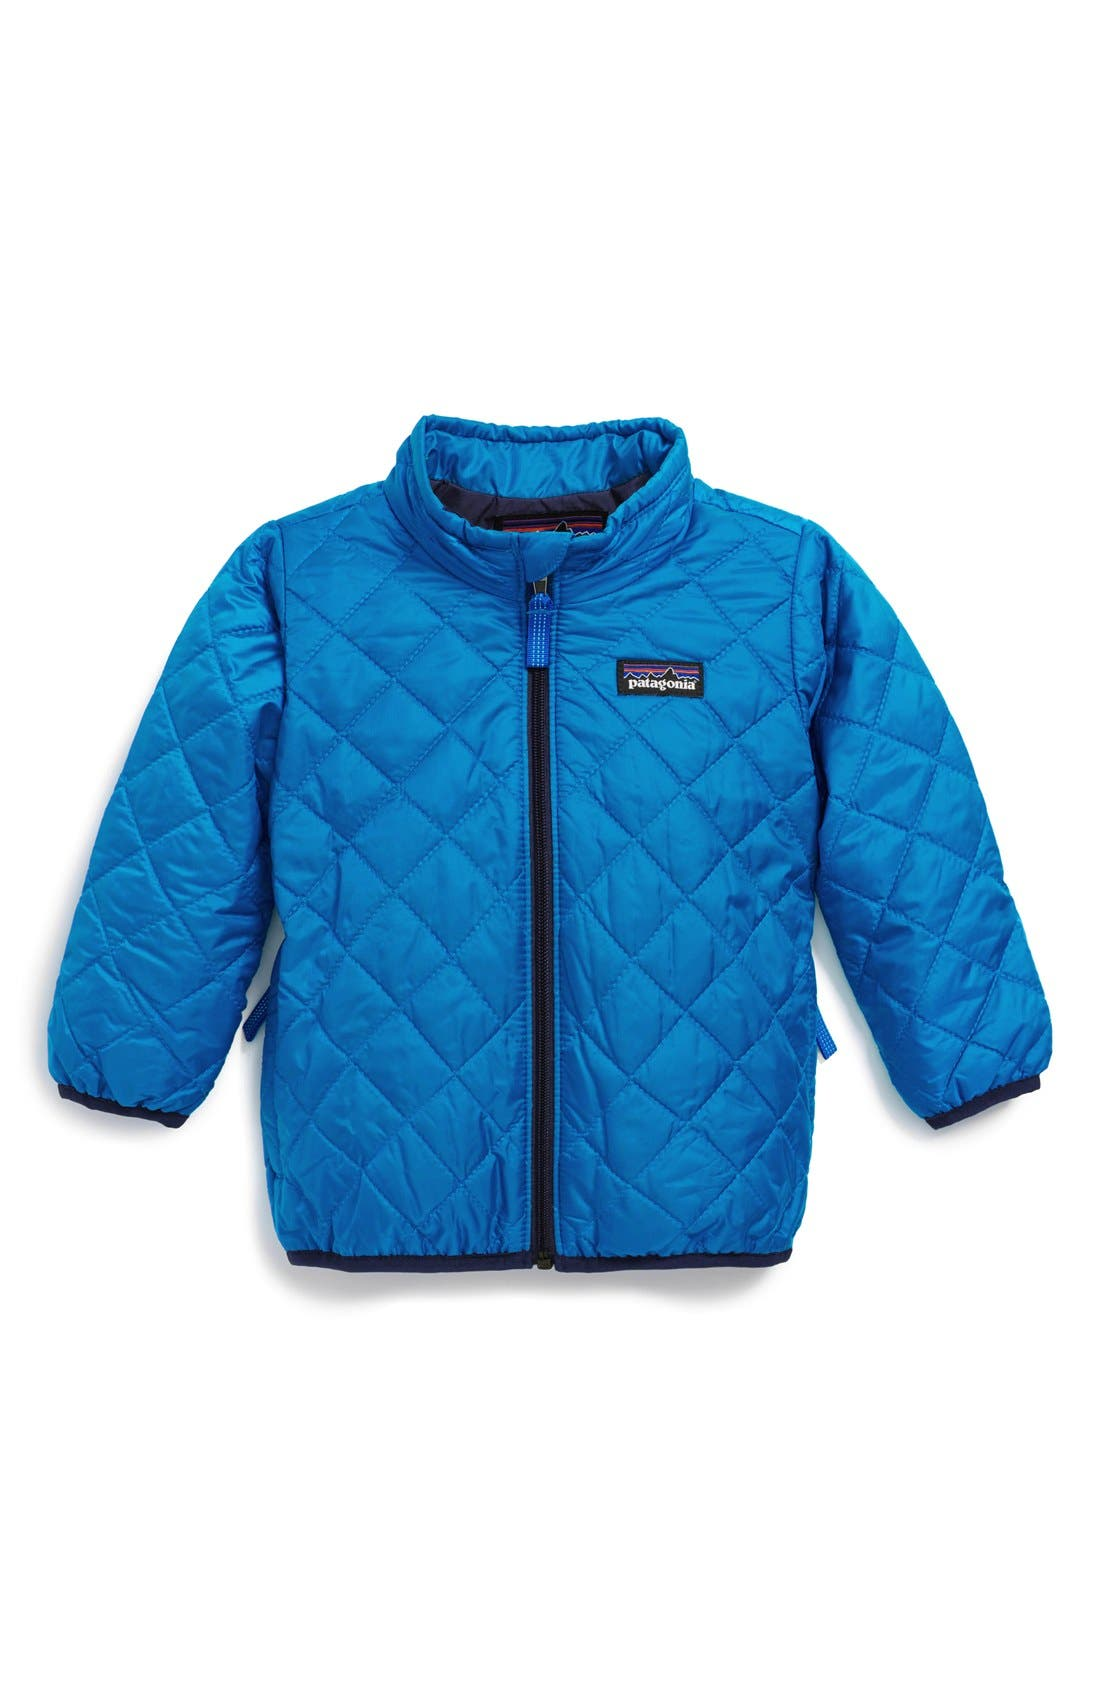 Alternate Image 1 Selected - Patagonia 'Nano Puff' Wind Resistant Water Repellent Jacket (Toddler Boys)